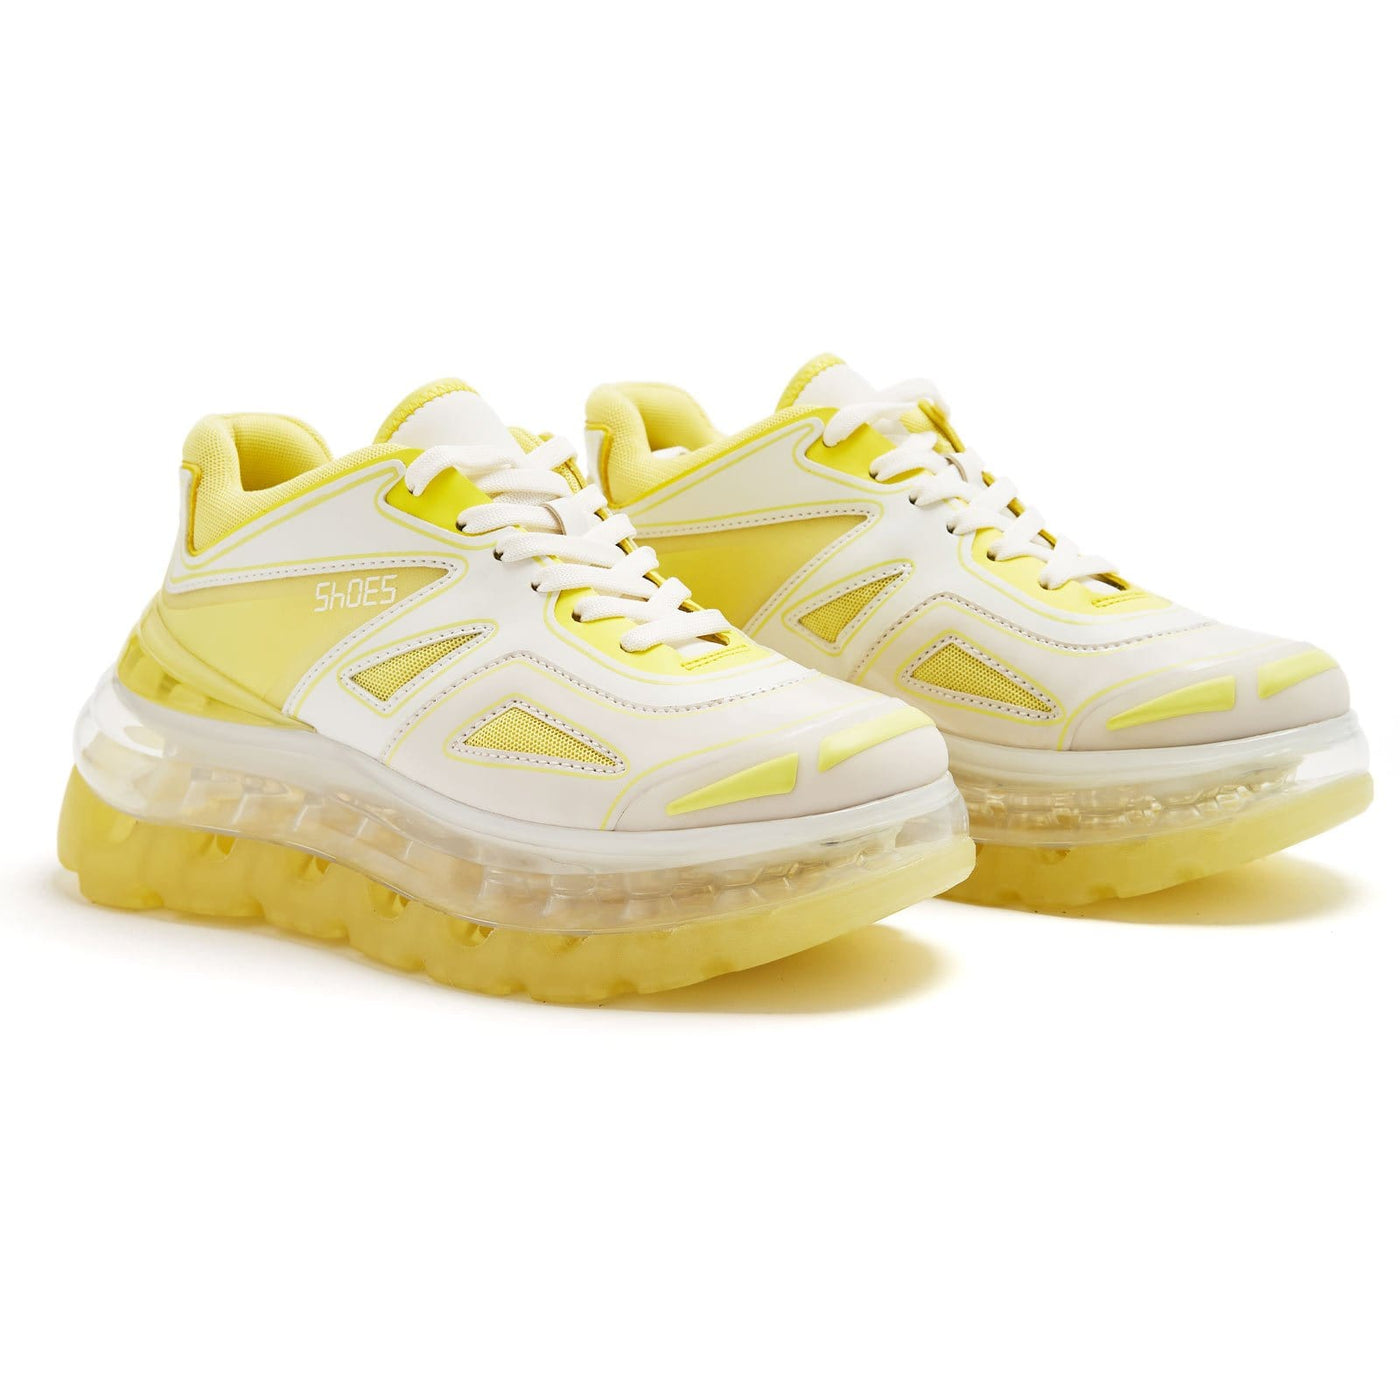 SHOES 53045 - BUMP'AIR - ACID